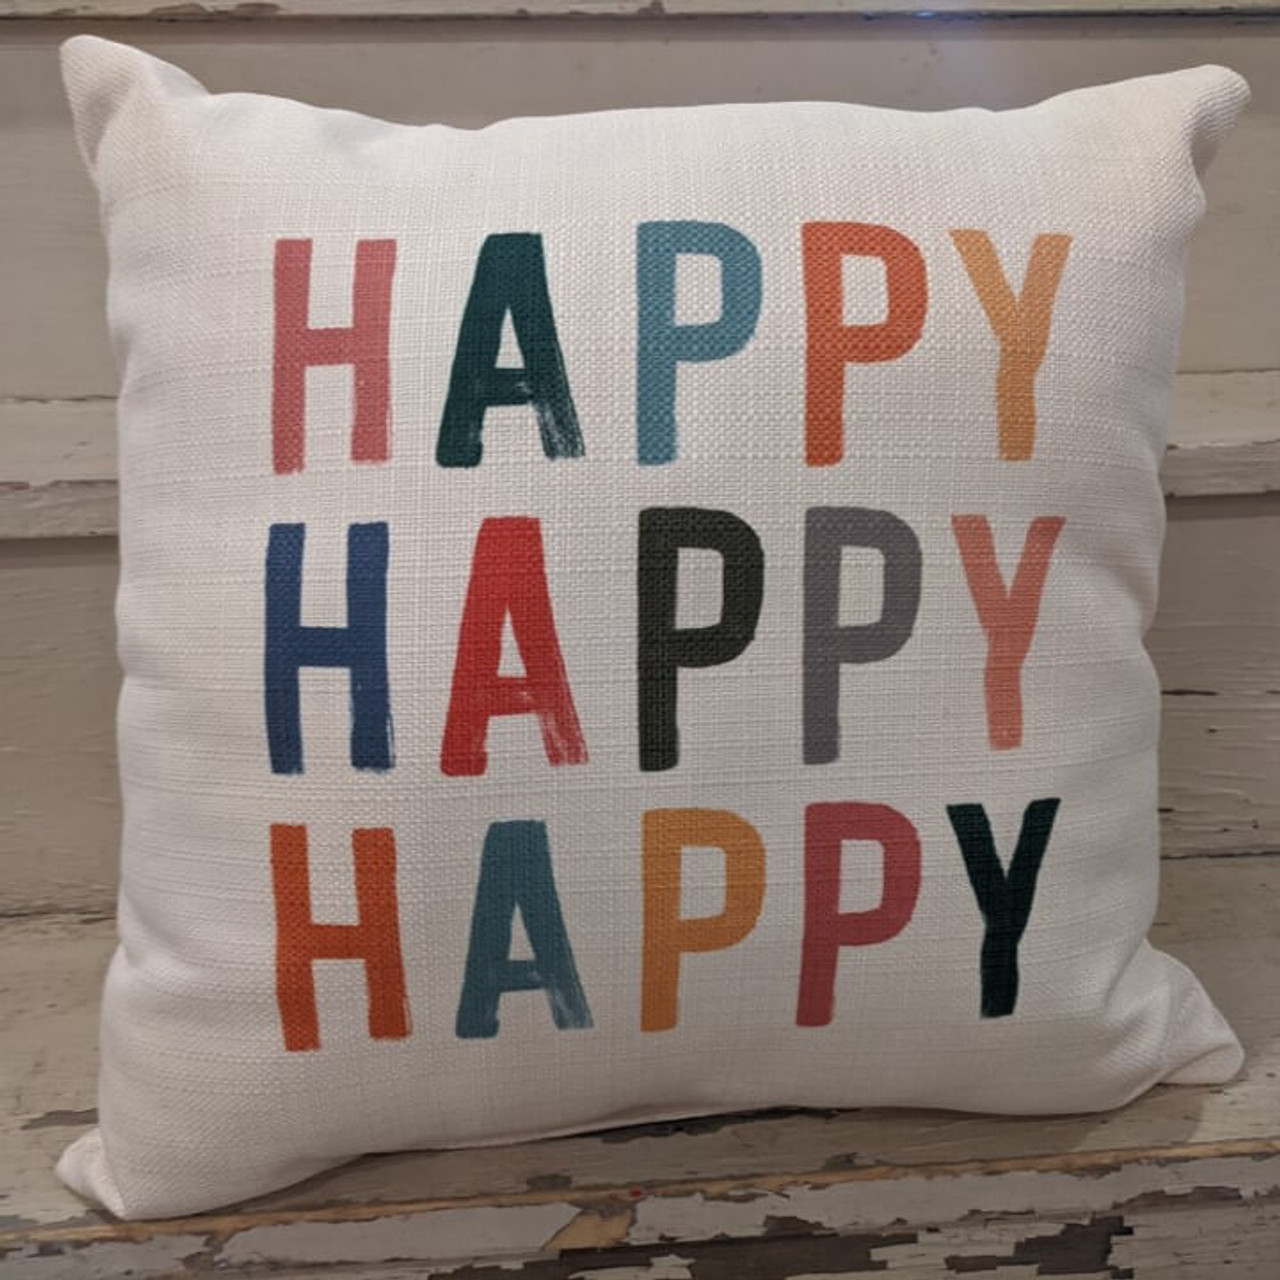 """The perfect way to cozy up any space! """"HAPPY HAPPY HAPPY"""" sentiment is dyed directly into the fabric, so it won't peel or crack. Made from a soft yet durable polyester fabric, your pillow will arrive stuffed with poly-fill and sewn shut. Approx. 17"""" square; machine washable in cold water, delicate cycle- fluff, air dry flat."""